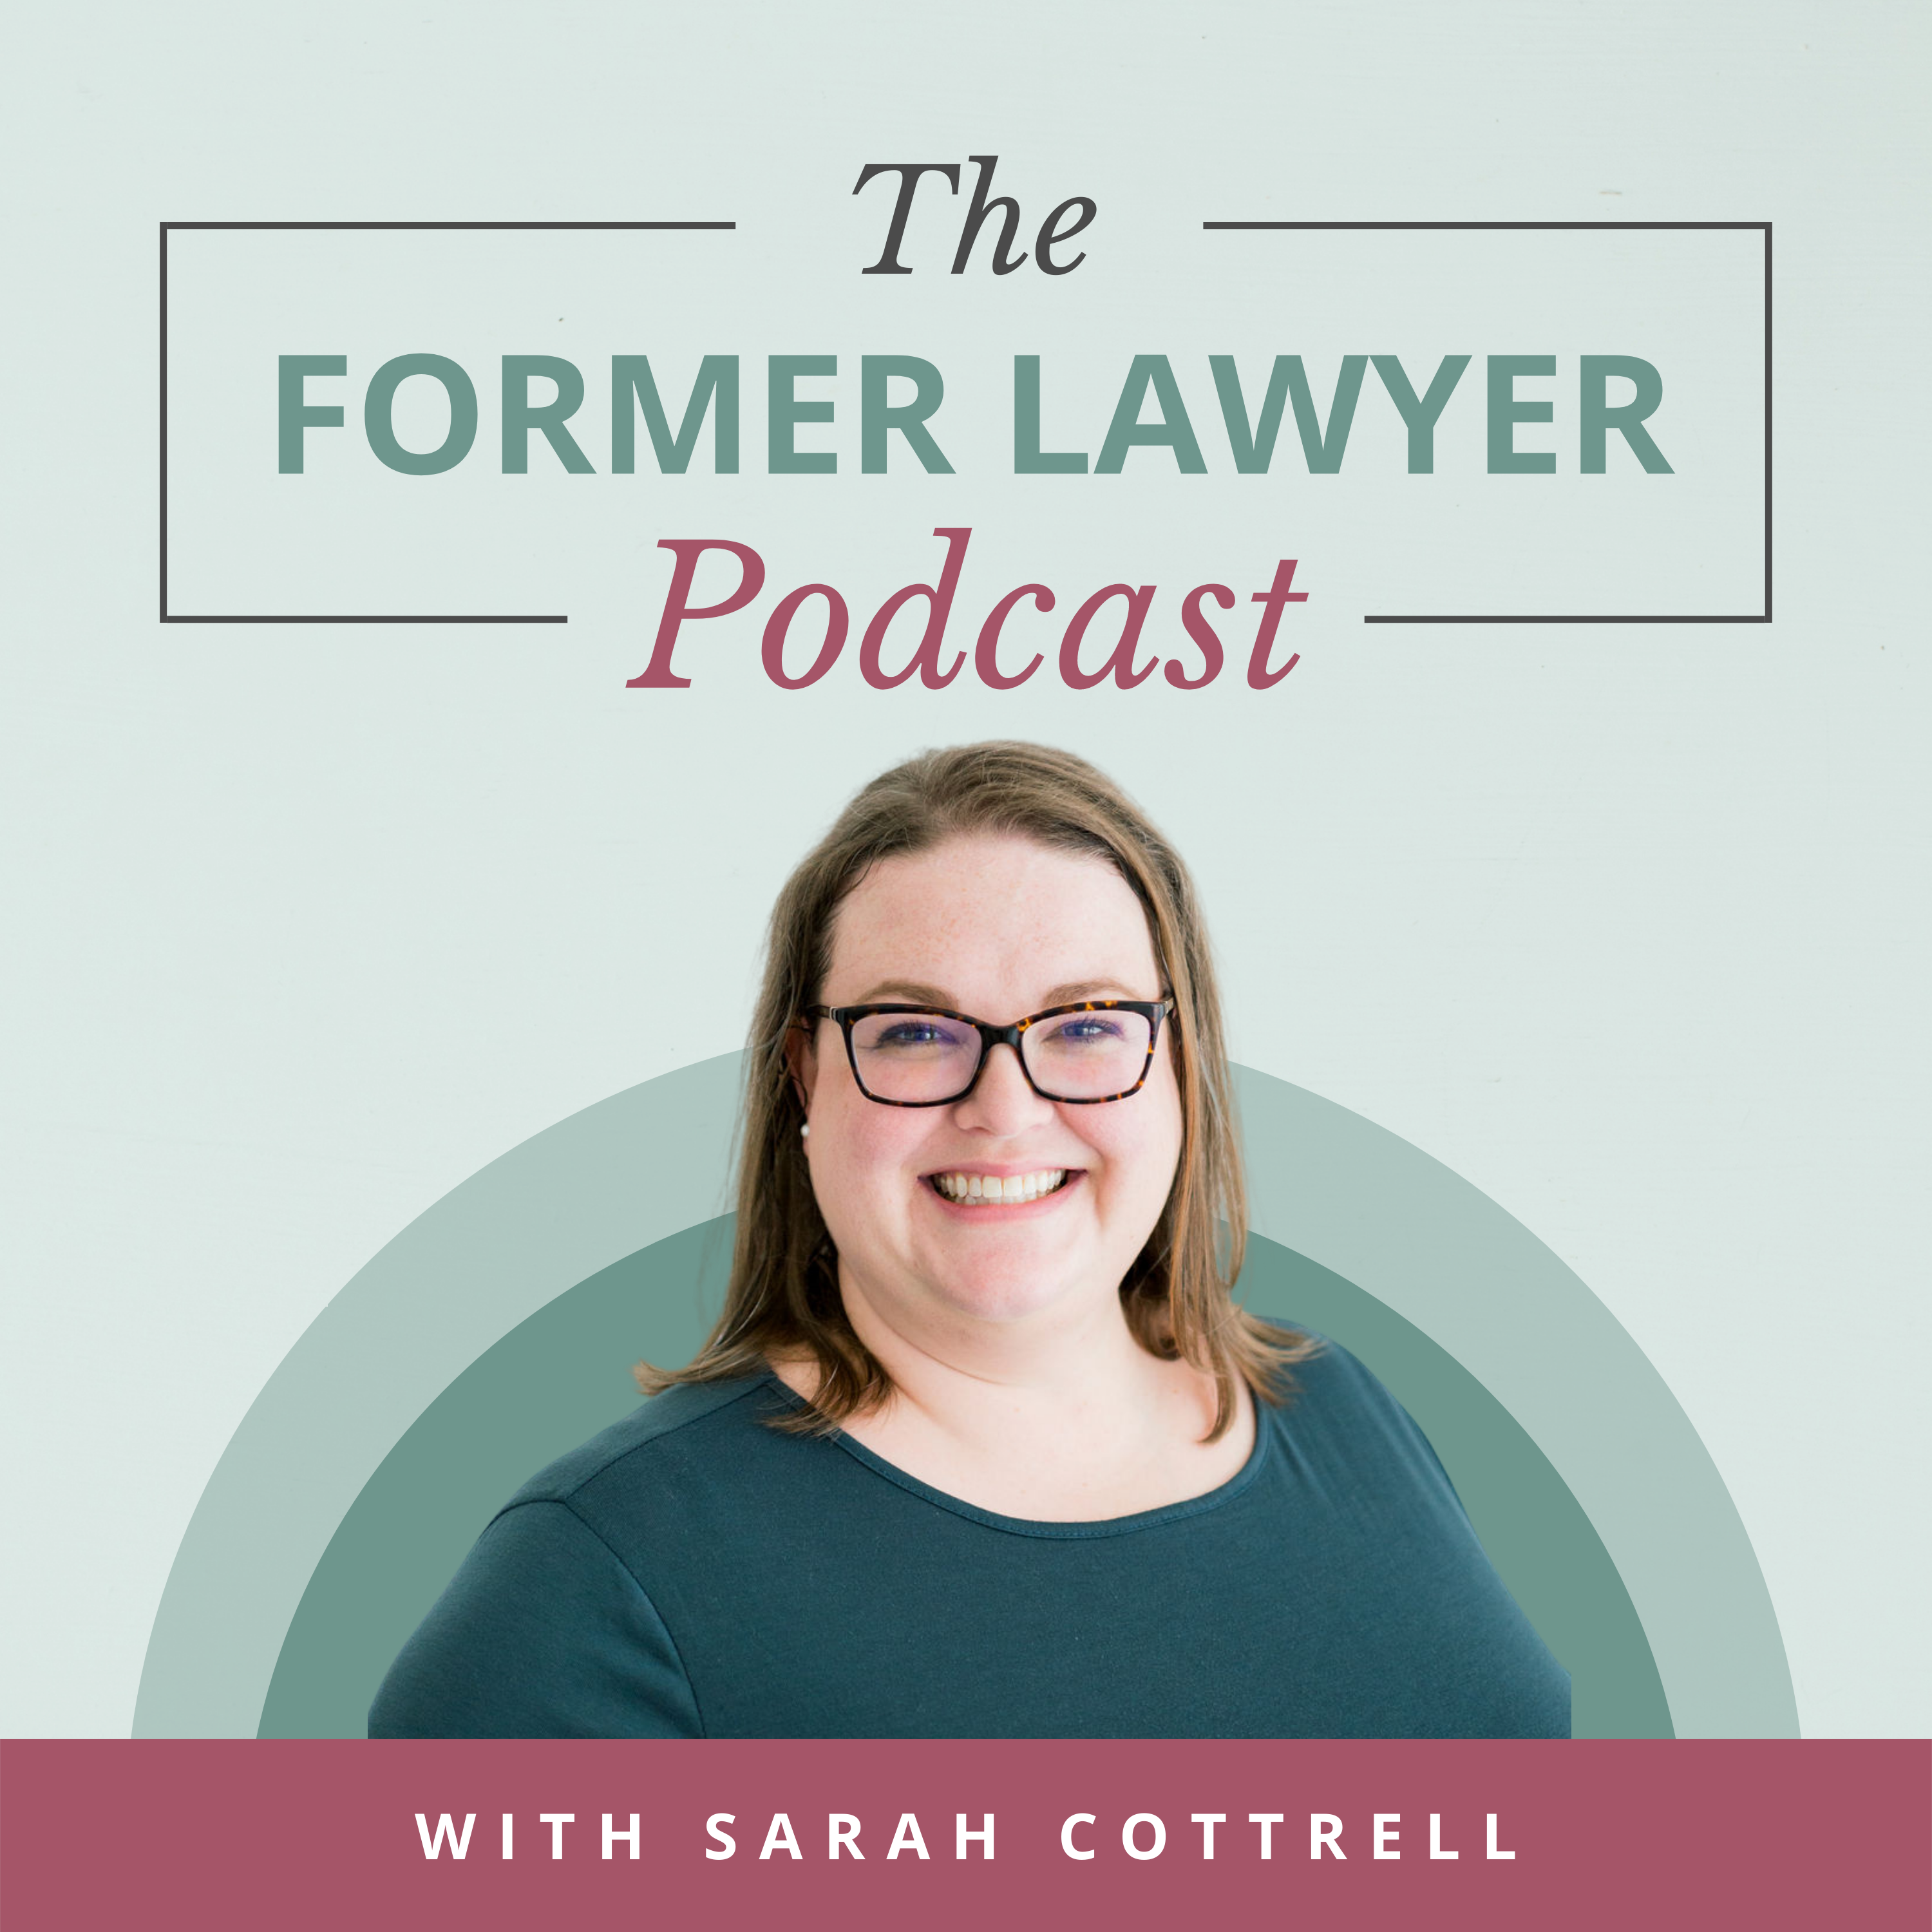 The Former Lawyer Podcast show art